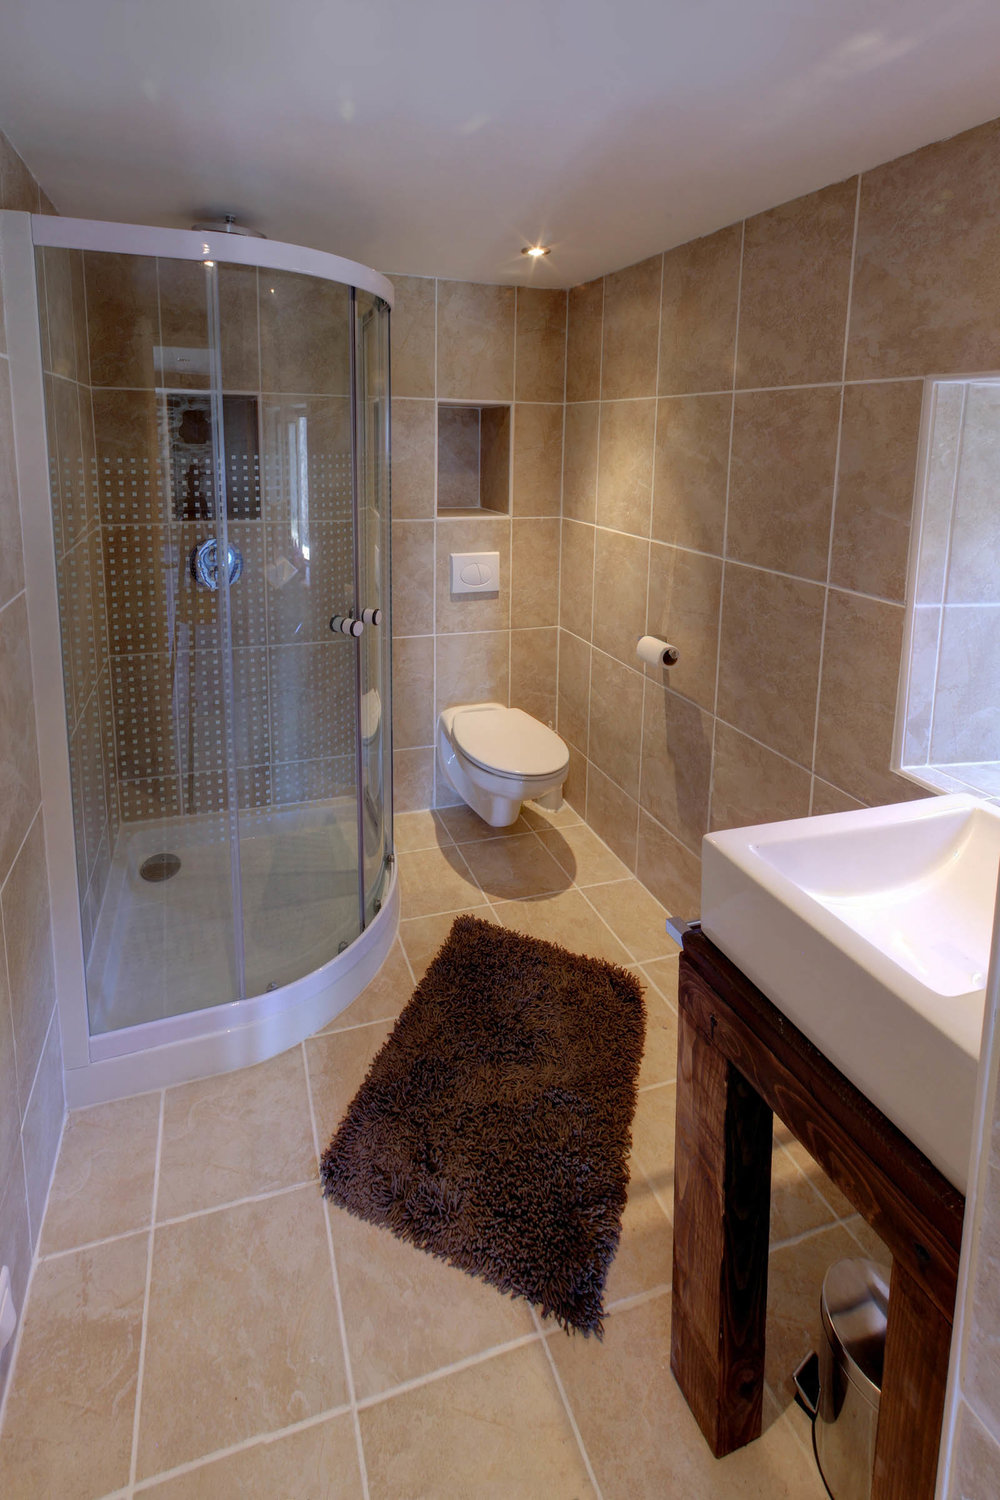 Copy of The elegant ground floor shower room